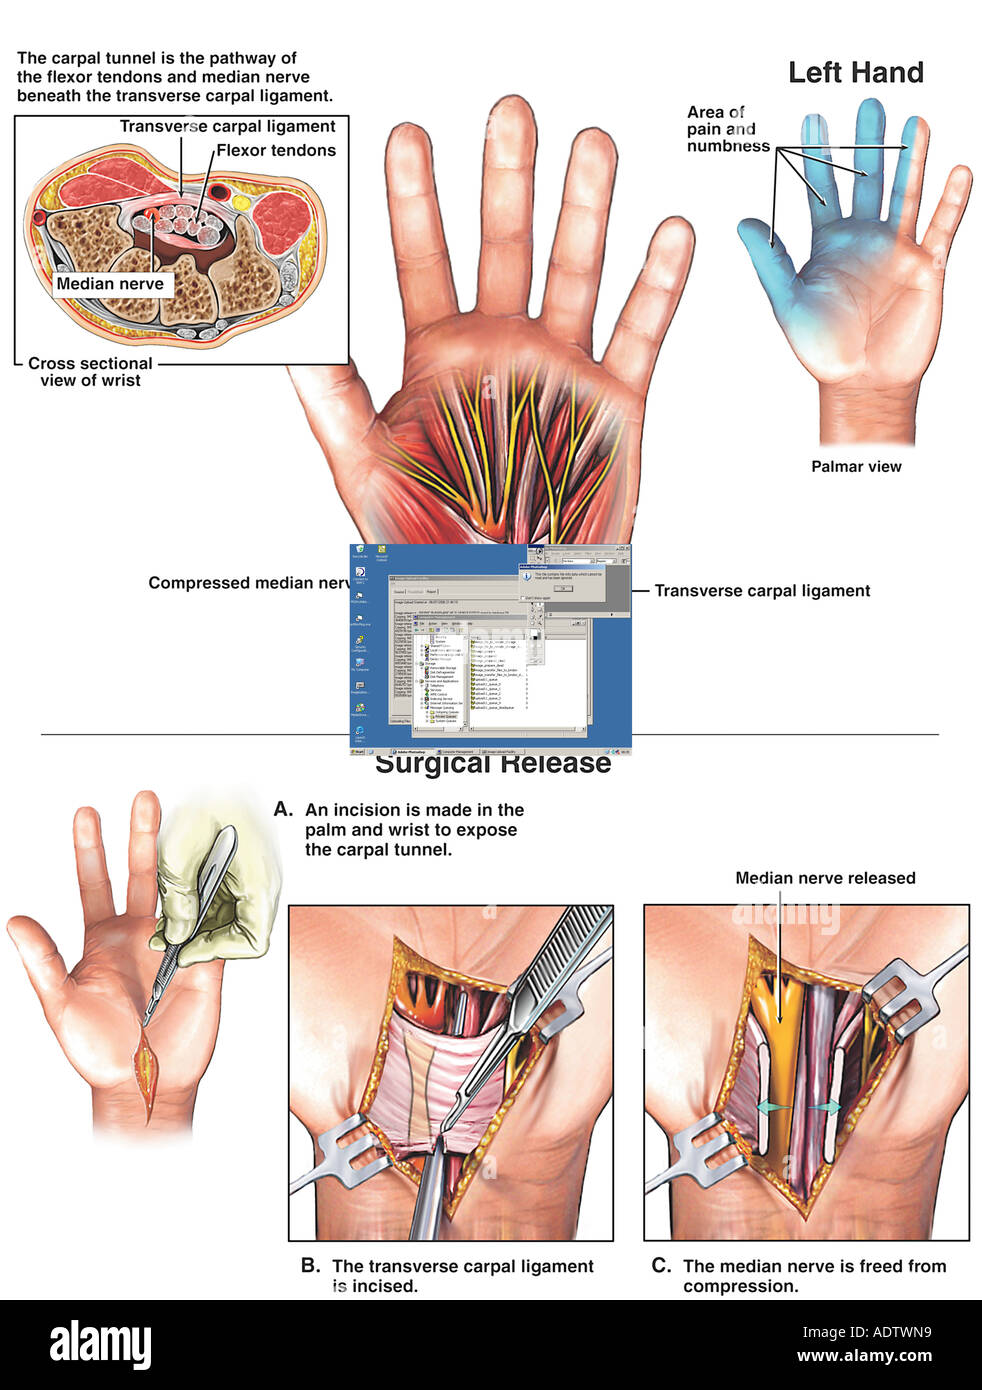 Carpal Tunnel Syndrome and Surgical Release: Left Hand - Stock Image